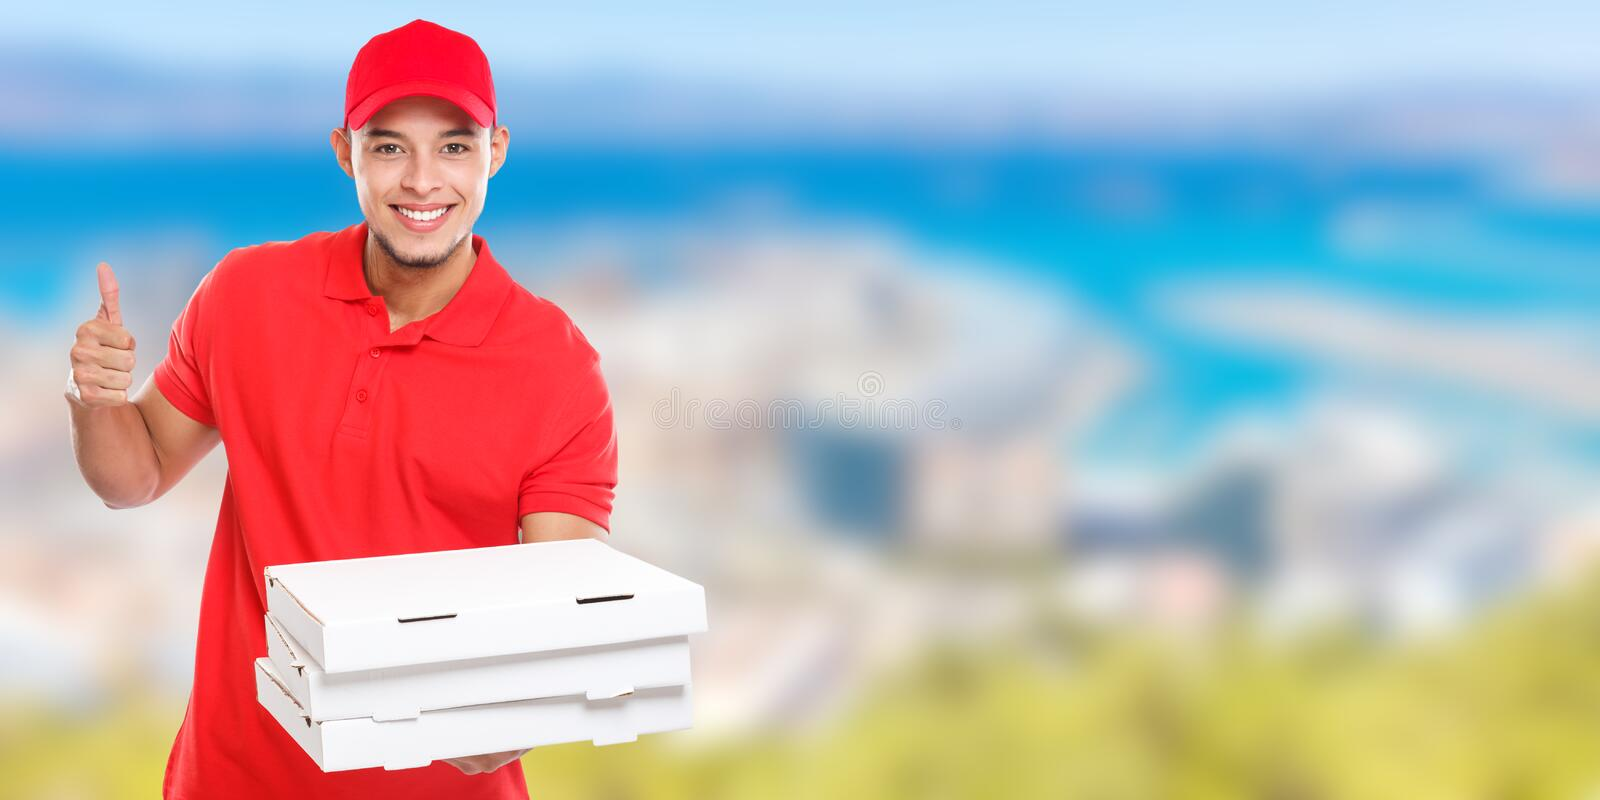 Pizza delivery latin man order delivering job success successful smiling deliver banner copyspace copy space. Outdoors stock images